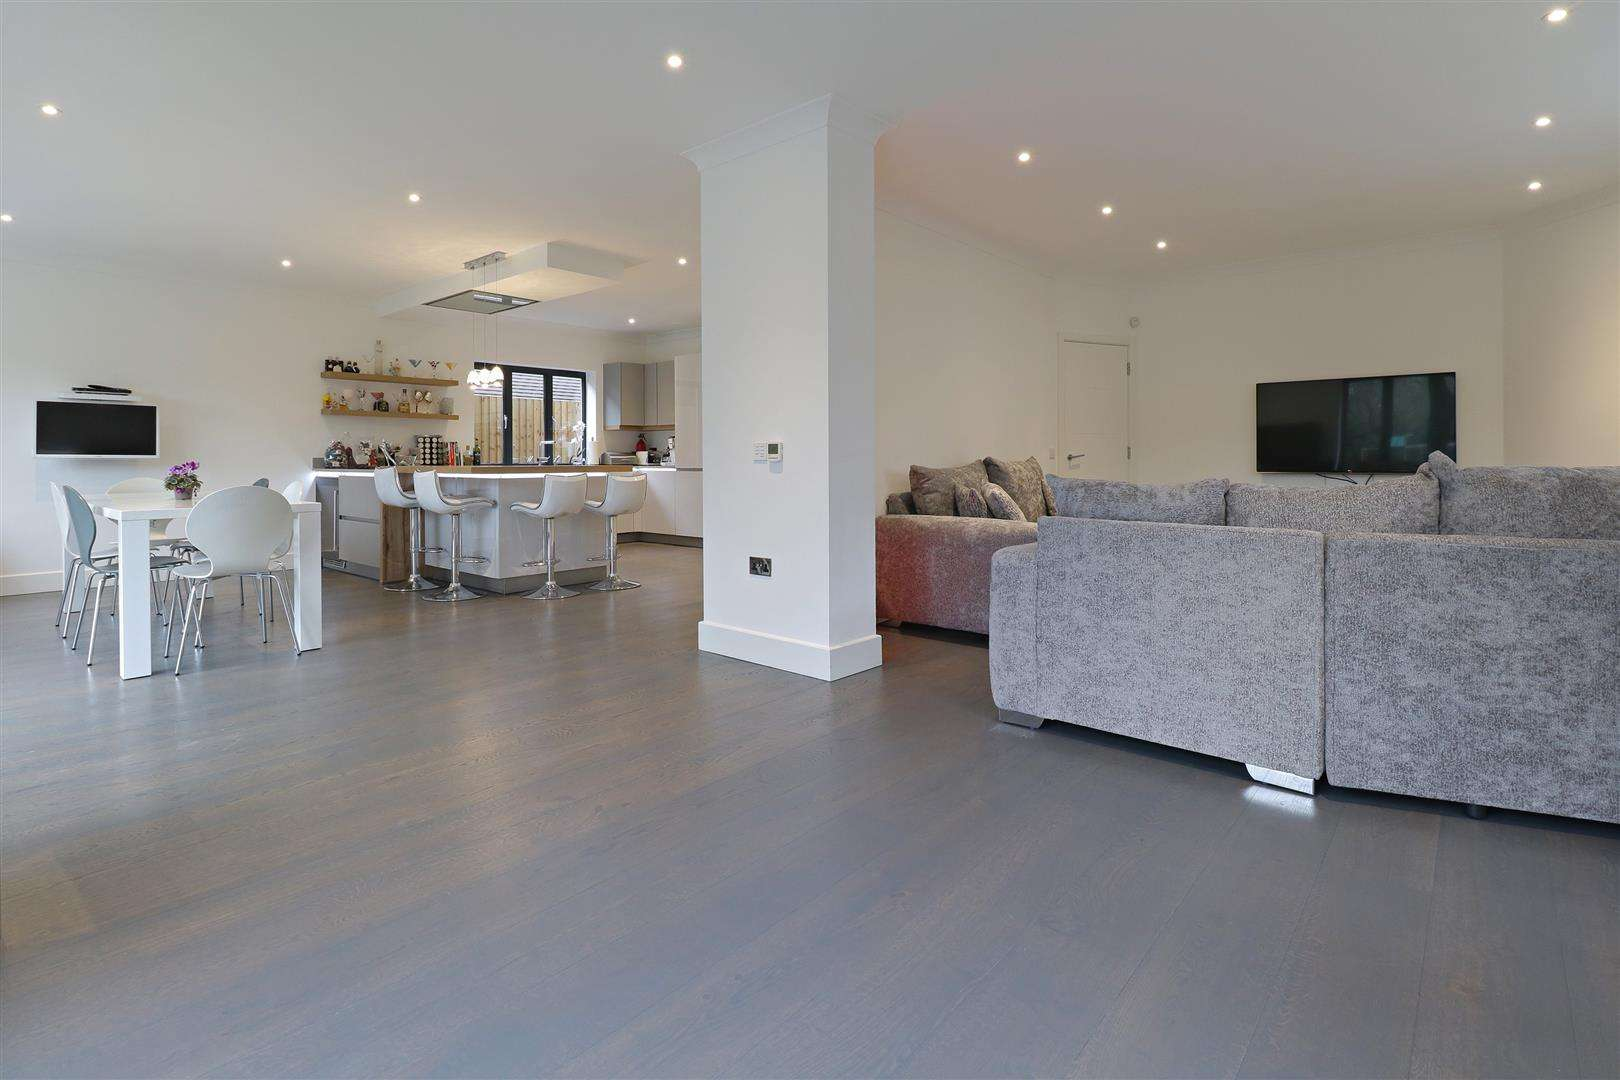 5 bed for sale in Watford Road, Radlett - (Property Image 4)